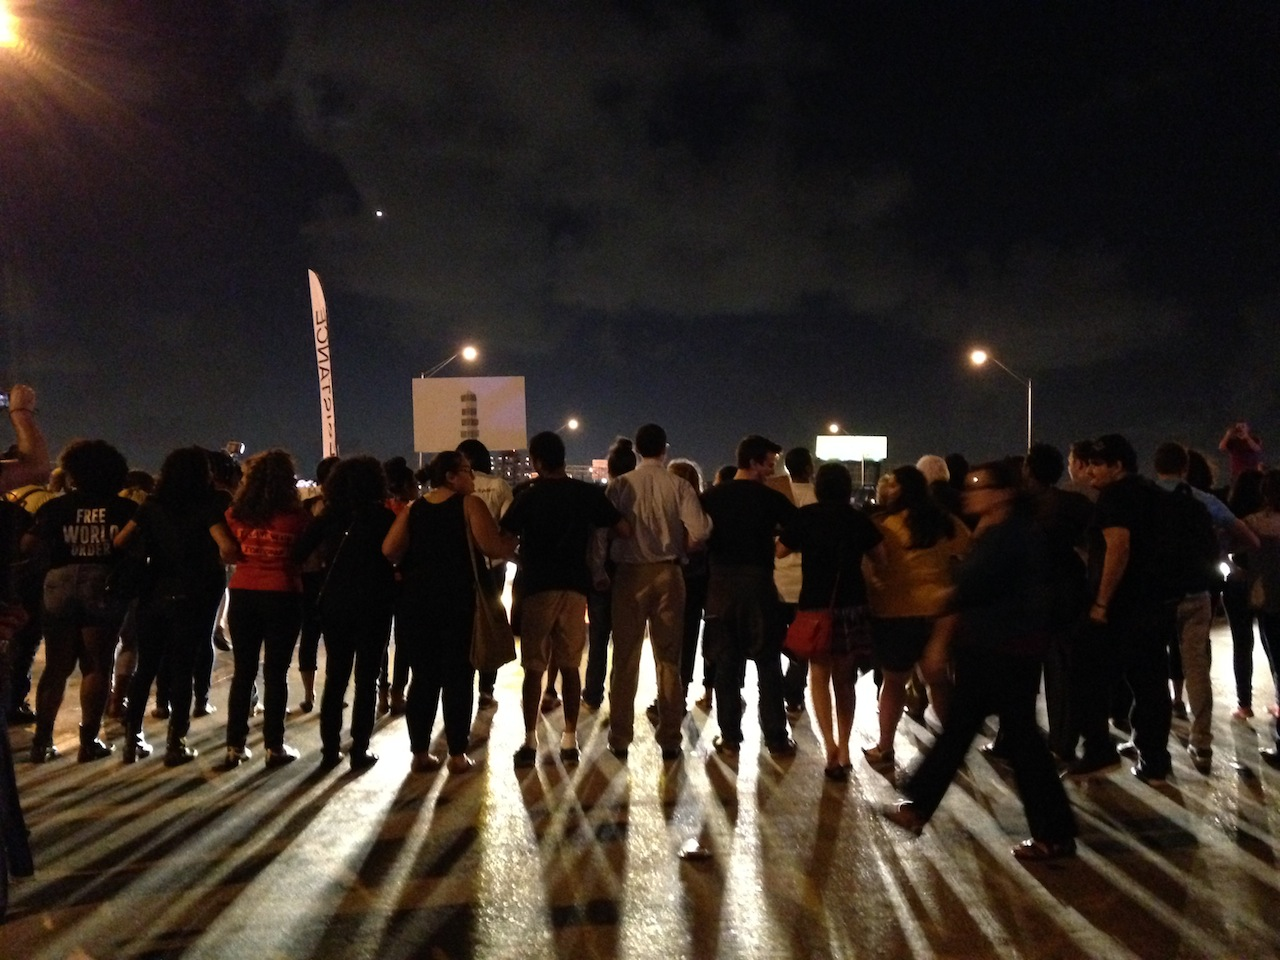 Hyperallergic:Hundreds Take to the Streets to Seek Justice for Artist Killed by Miami Police